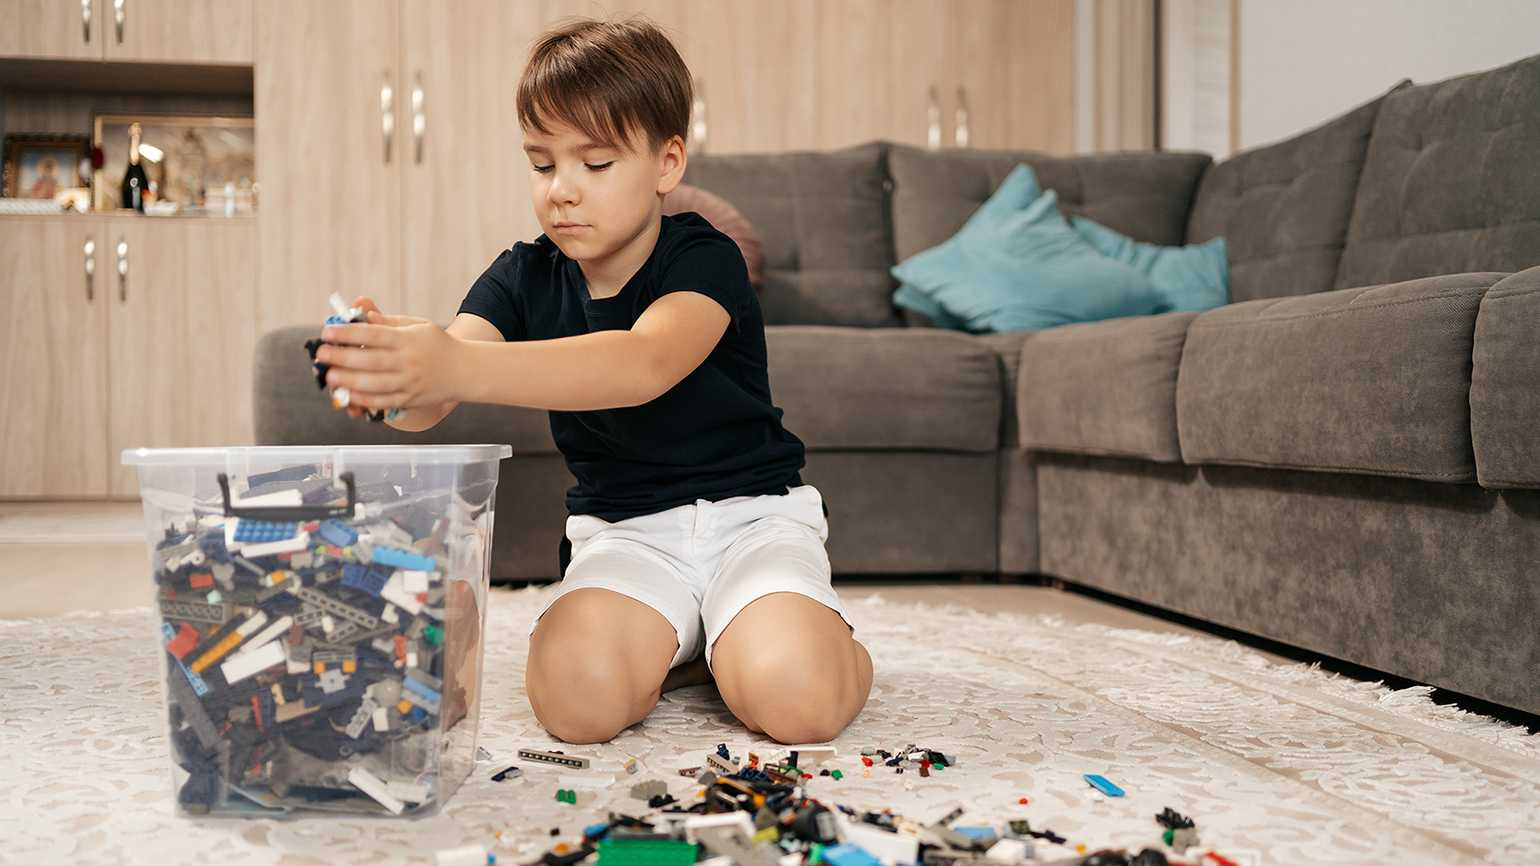 A young boy putting away his toys